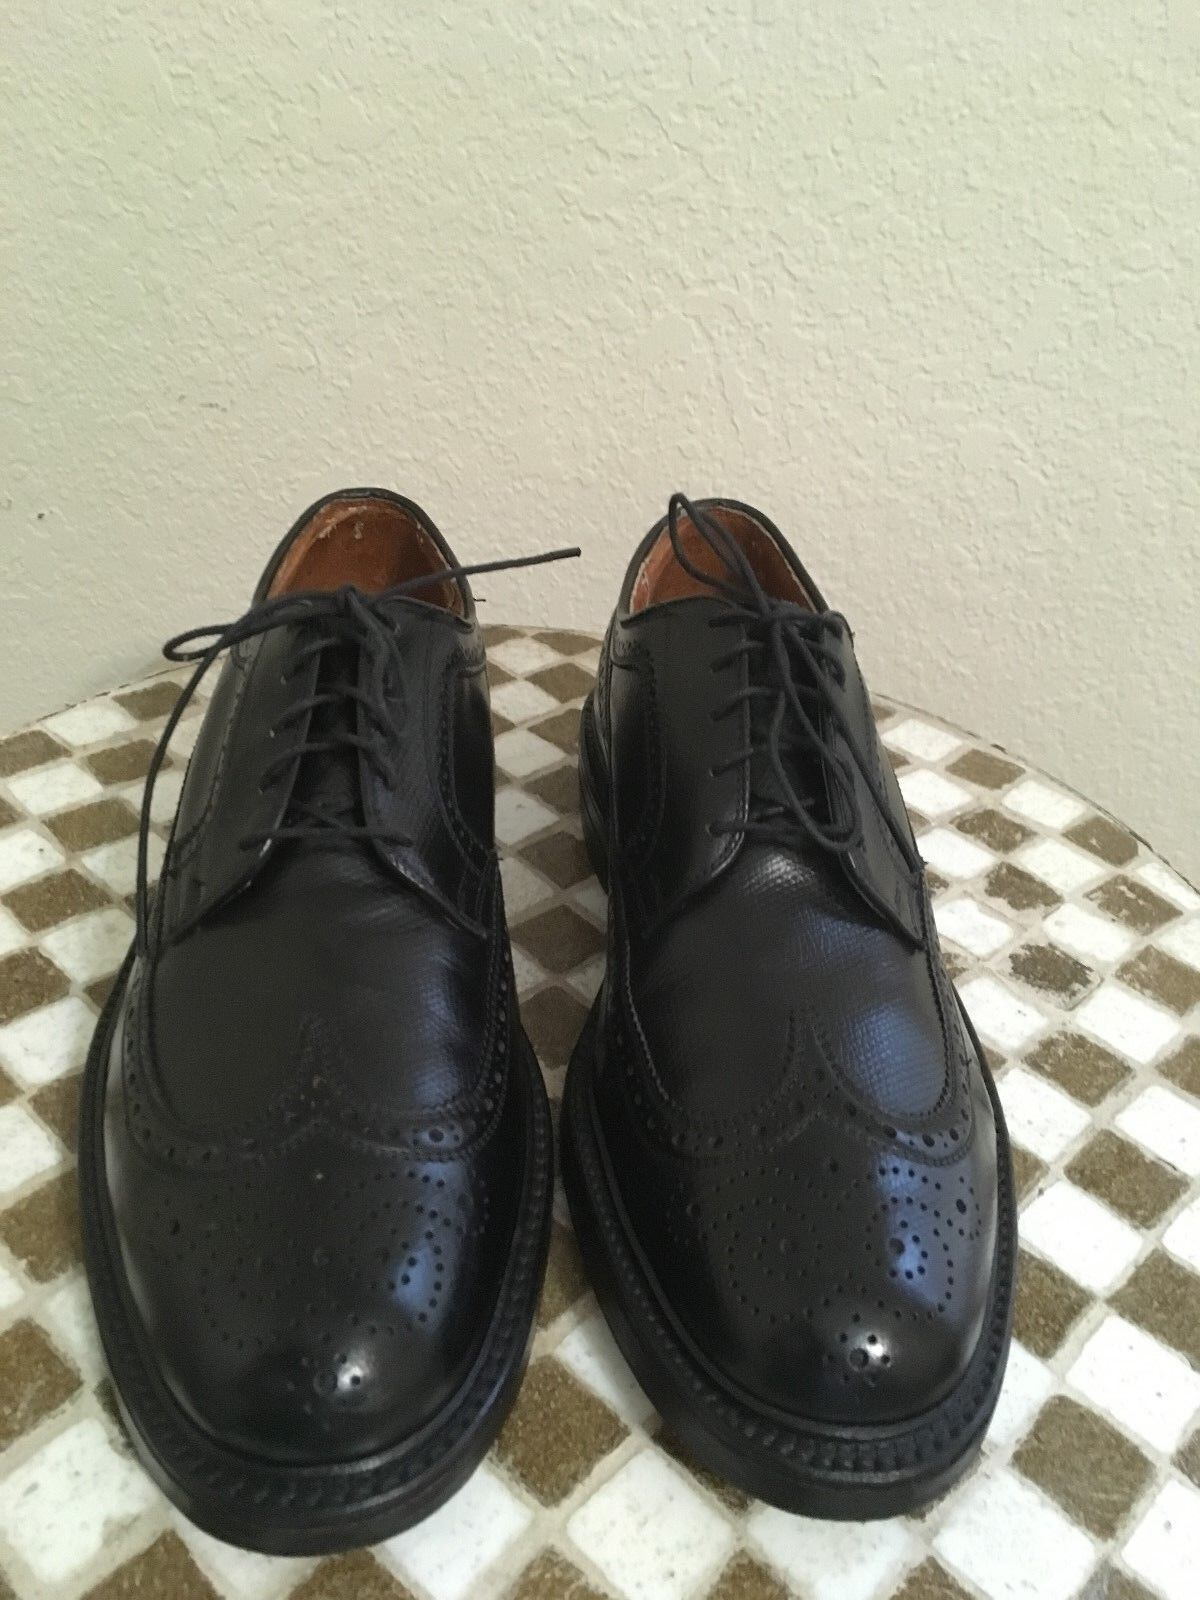 schwarz LEATHER MADE IN USA VINTAGE LACE UP WING TIP TIP TIP POWER schuhe 8.5 D 93e185